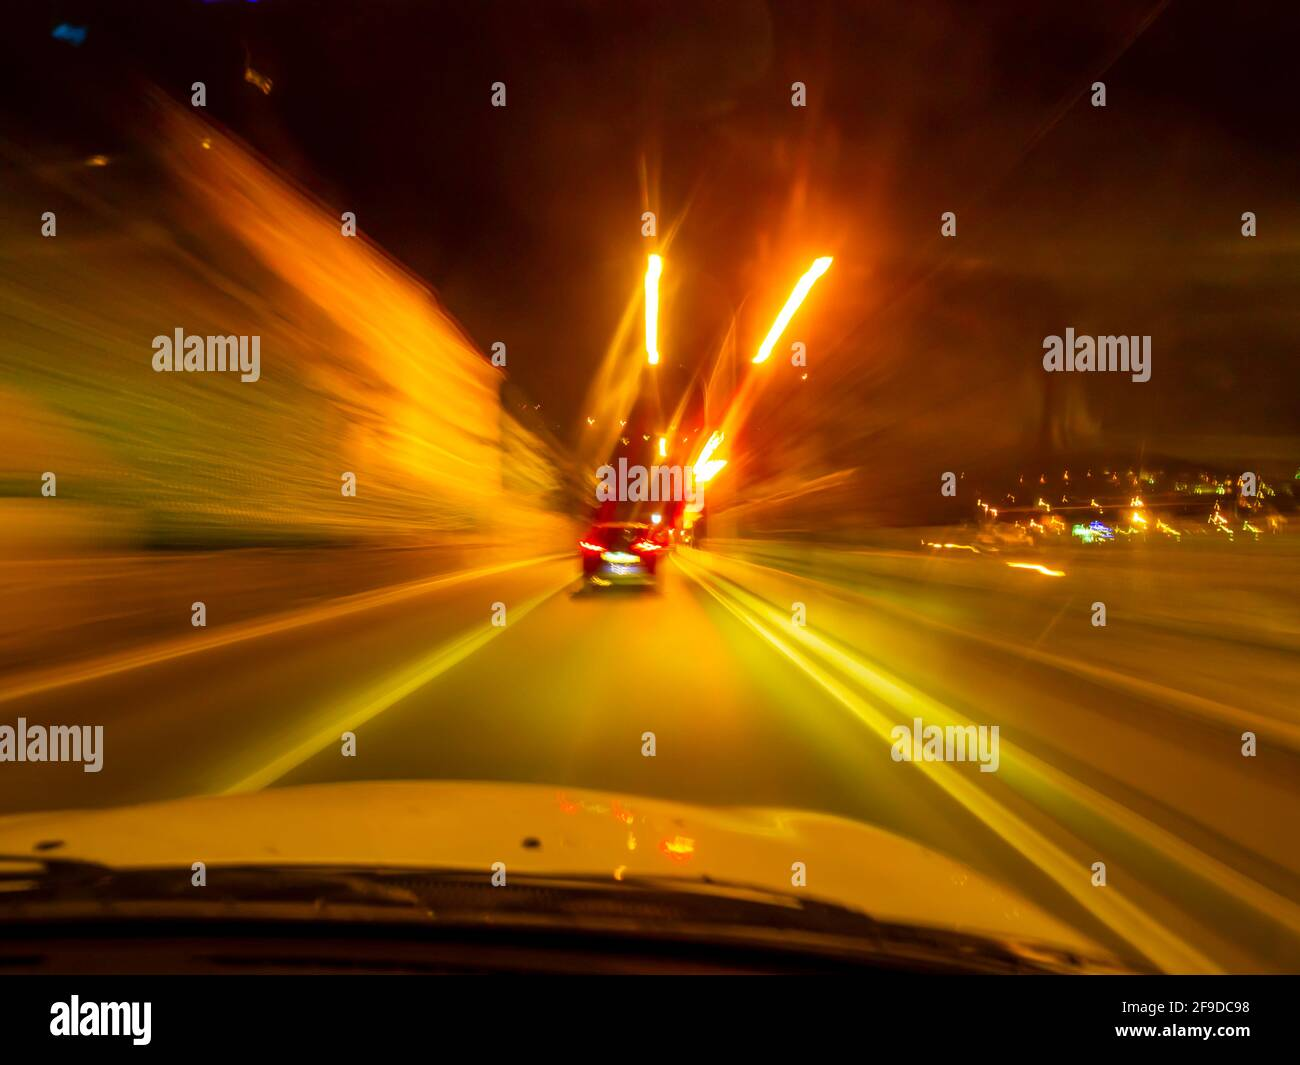 Intentionally blurry blur diminishing lines frantic furious driving warm warmth Red Yellow Orange vivid intensive colors Stock Photo